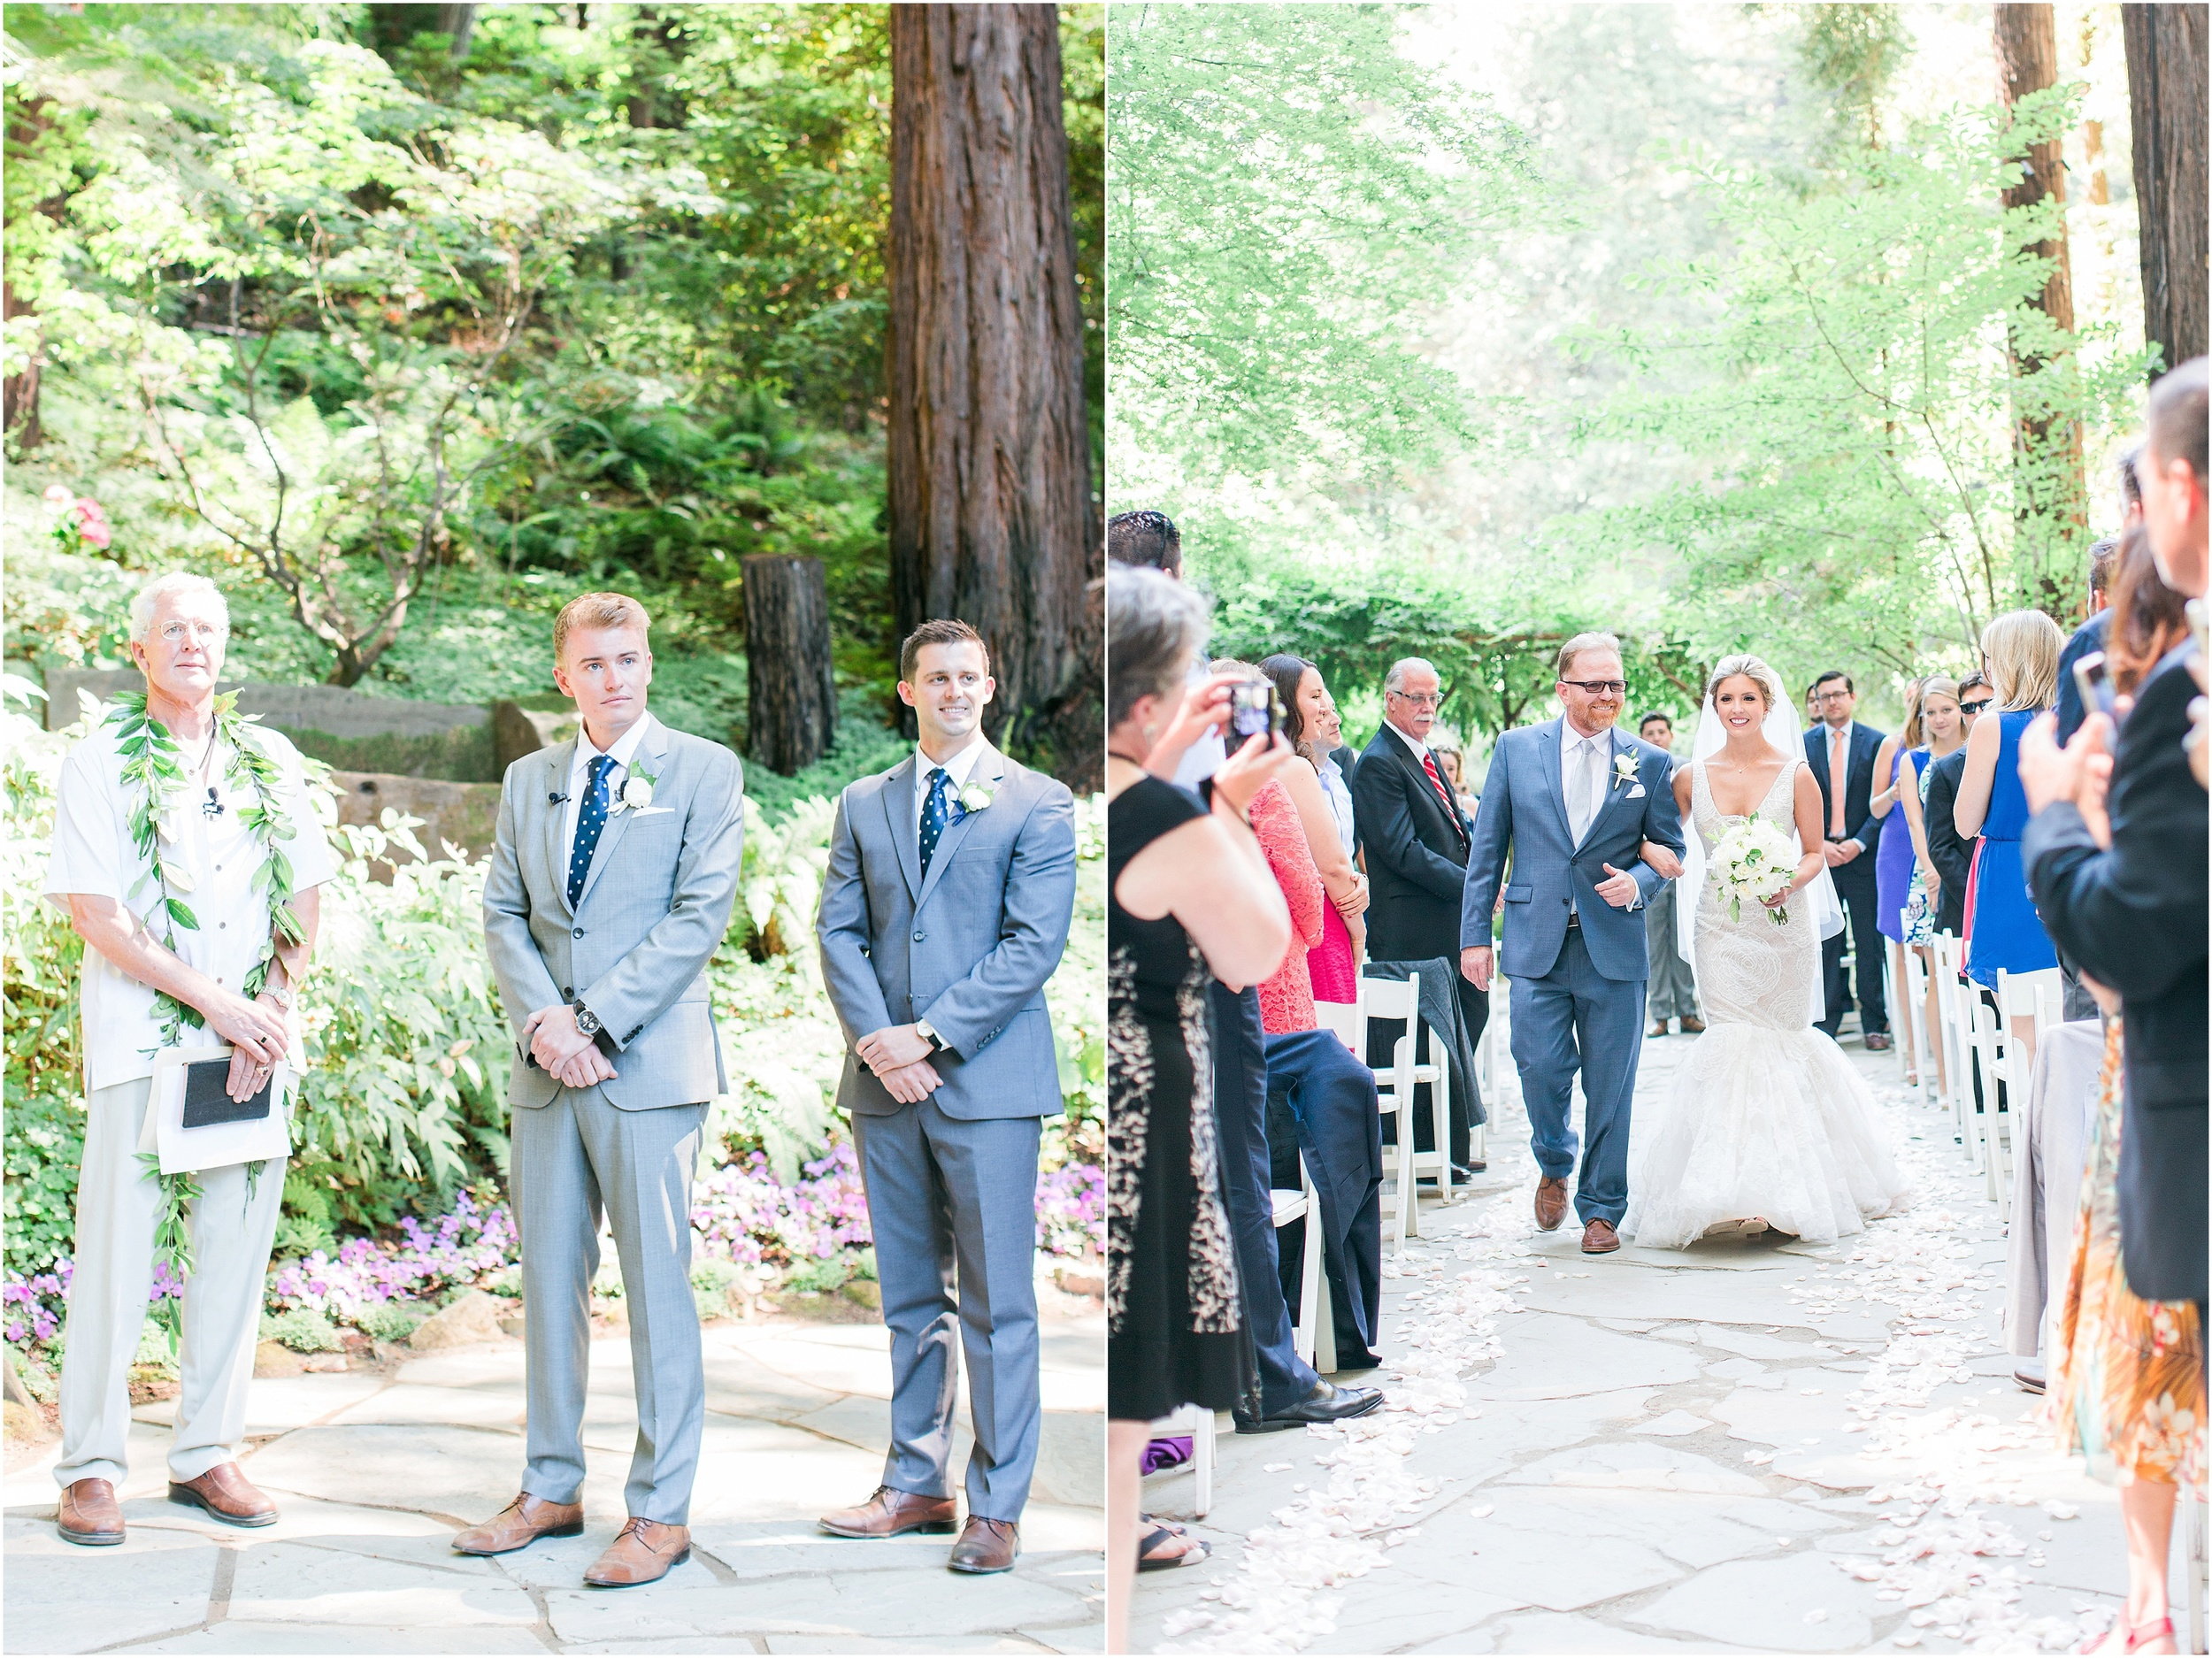 Nestldown_Rustic_Summer_Redwoods_Wedding- 025.jpg